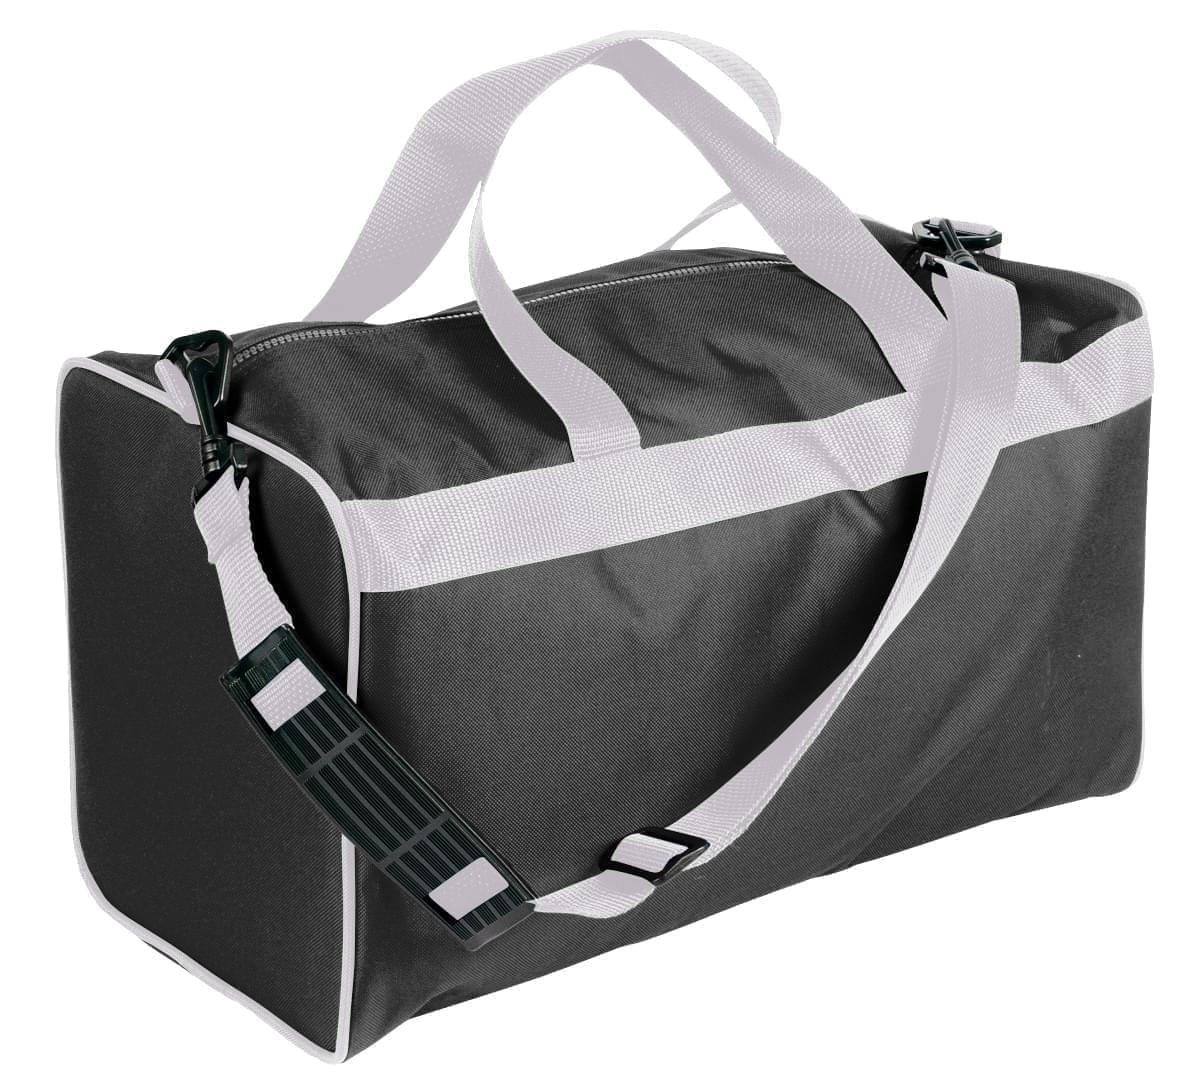 USA Made Nylon Poly Weekend Duffles, Black-White, WLKX31AAO4